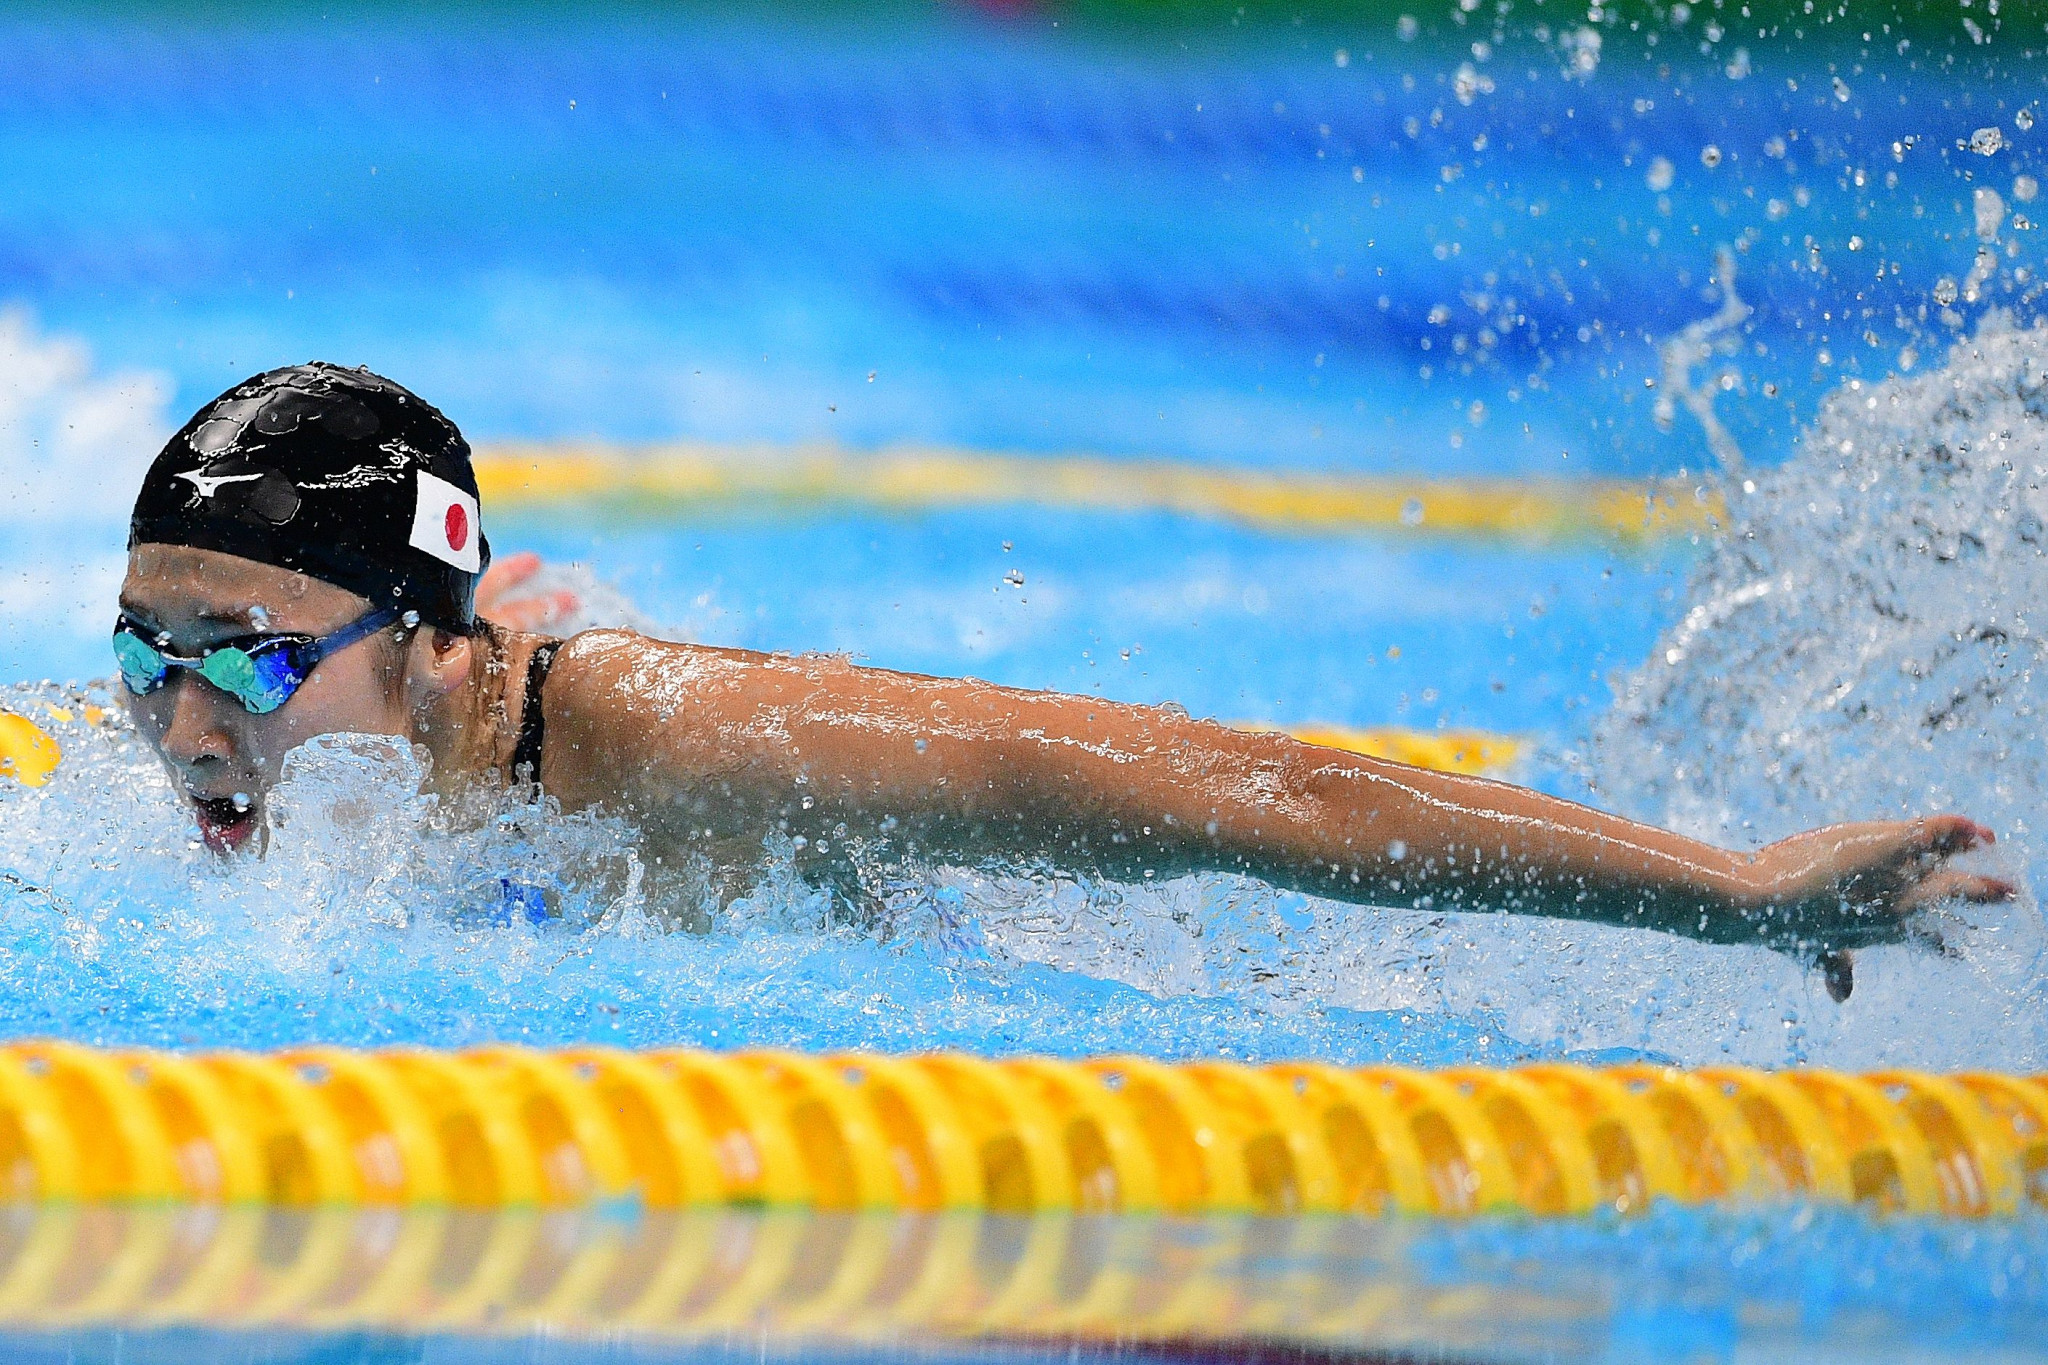 Japan's Rikako Ikee claimed three gold medals in the pool, including that from the women's 50 metres butterfly event in a Games record time ©Getty Images